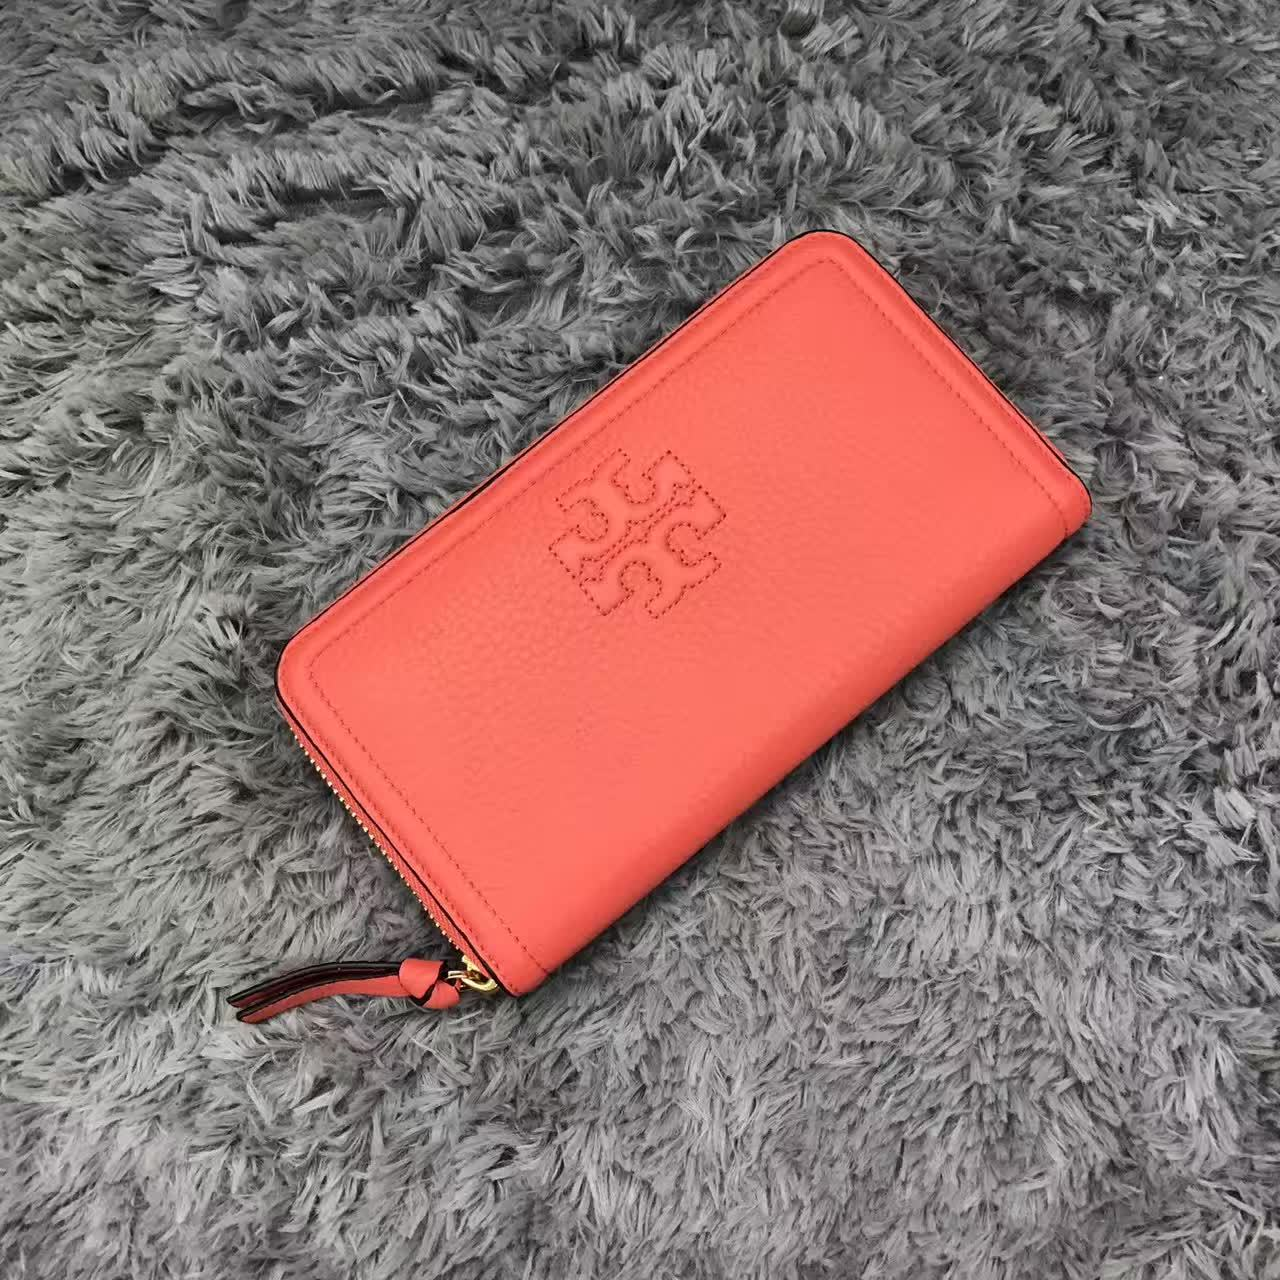 ce13818039a5 NWT Tory Burch Thea Multi-Gusset Leather Zip and 50 similar items.  Mmexport1491398745689. Mmexport1491398745689